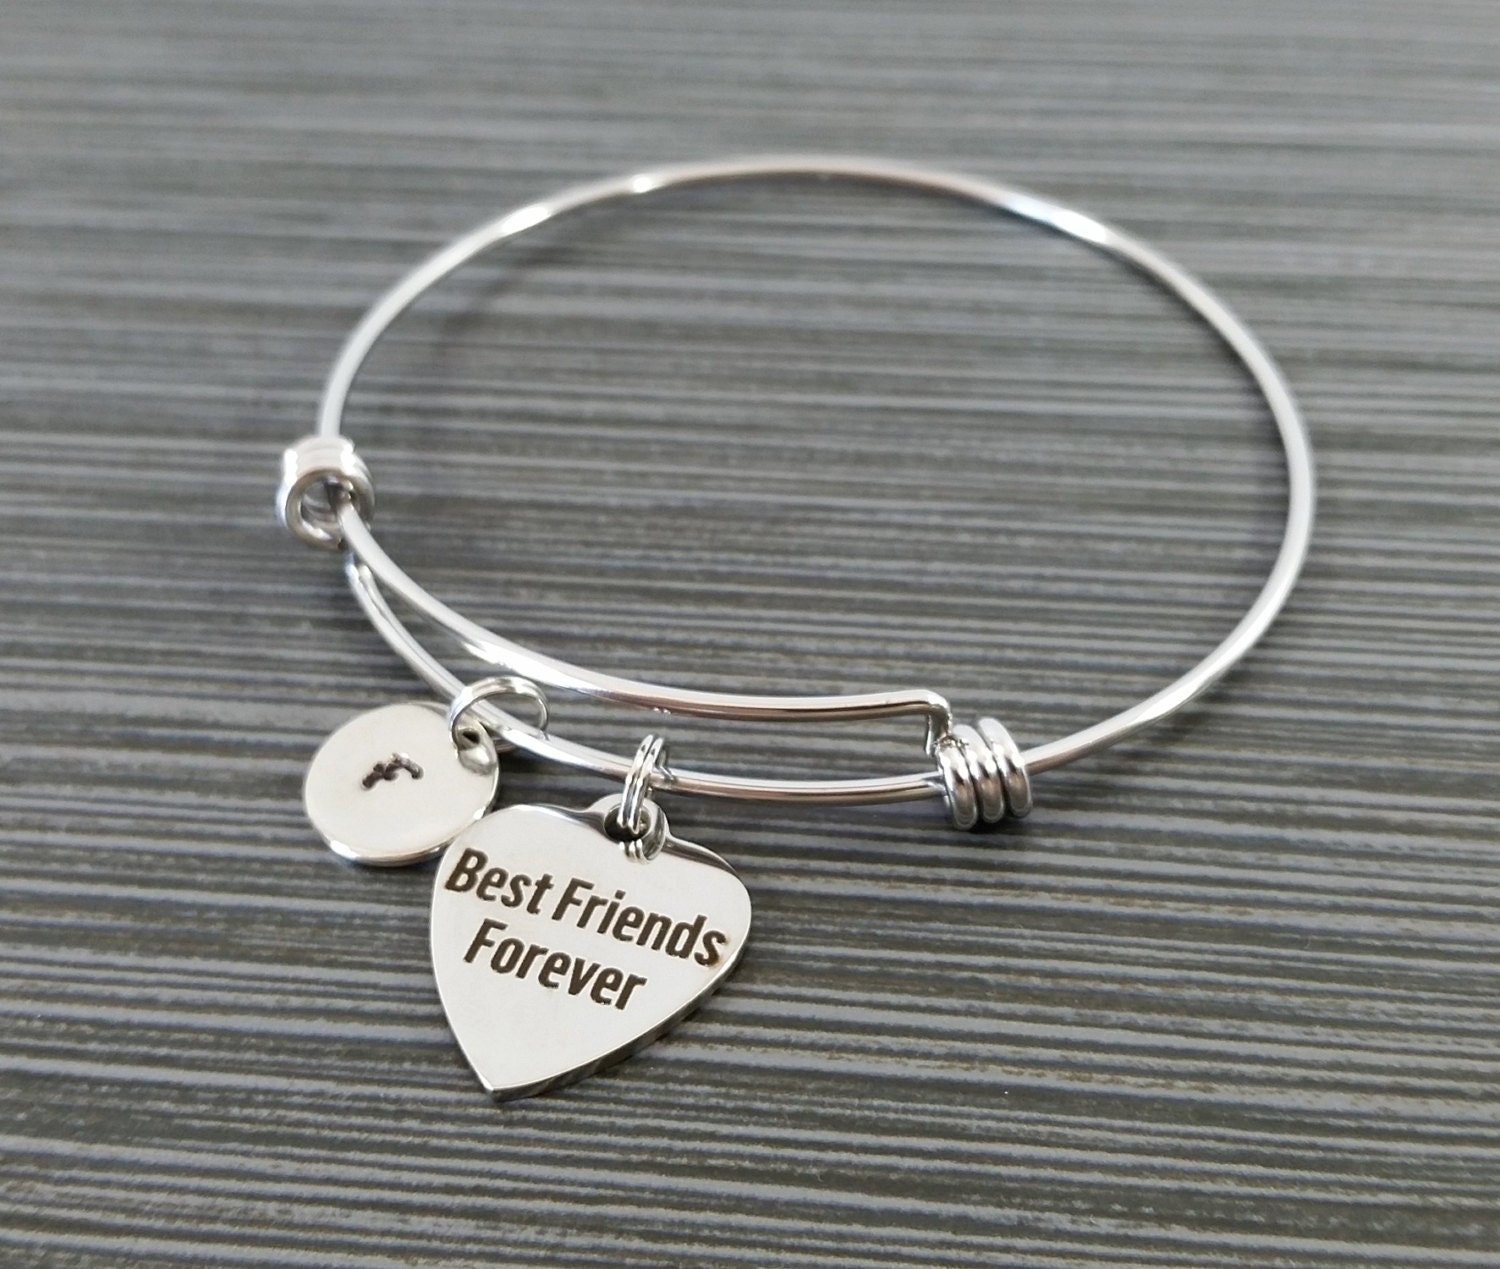 Best Friend Charm Bracelet: Best Friends Forever Bangle Best Friend Charm Bracelet